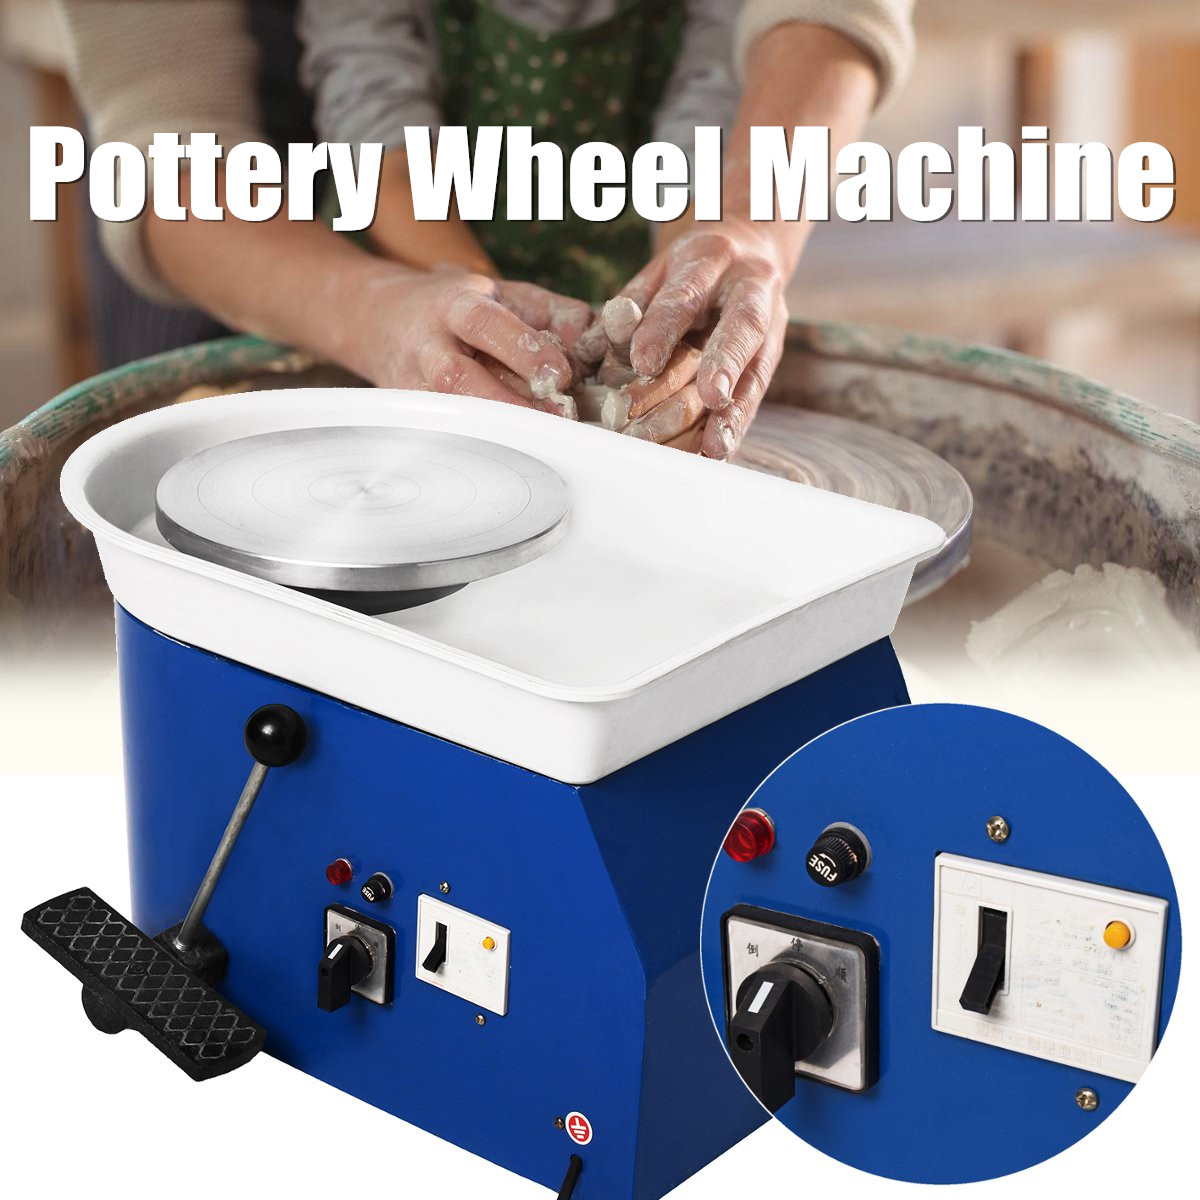 250W 220V Pottery Forming Machine Pottery Wheel Ceramic Machine Ceramics DIY Clay Machine250W 220V Pottery Forming Machine Pottery Wheel Ceramic Machine Ceramics DIY Clay Machine